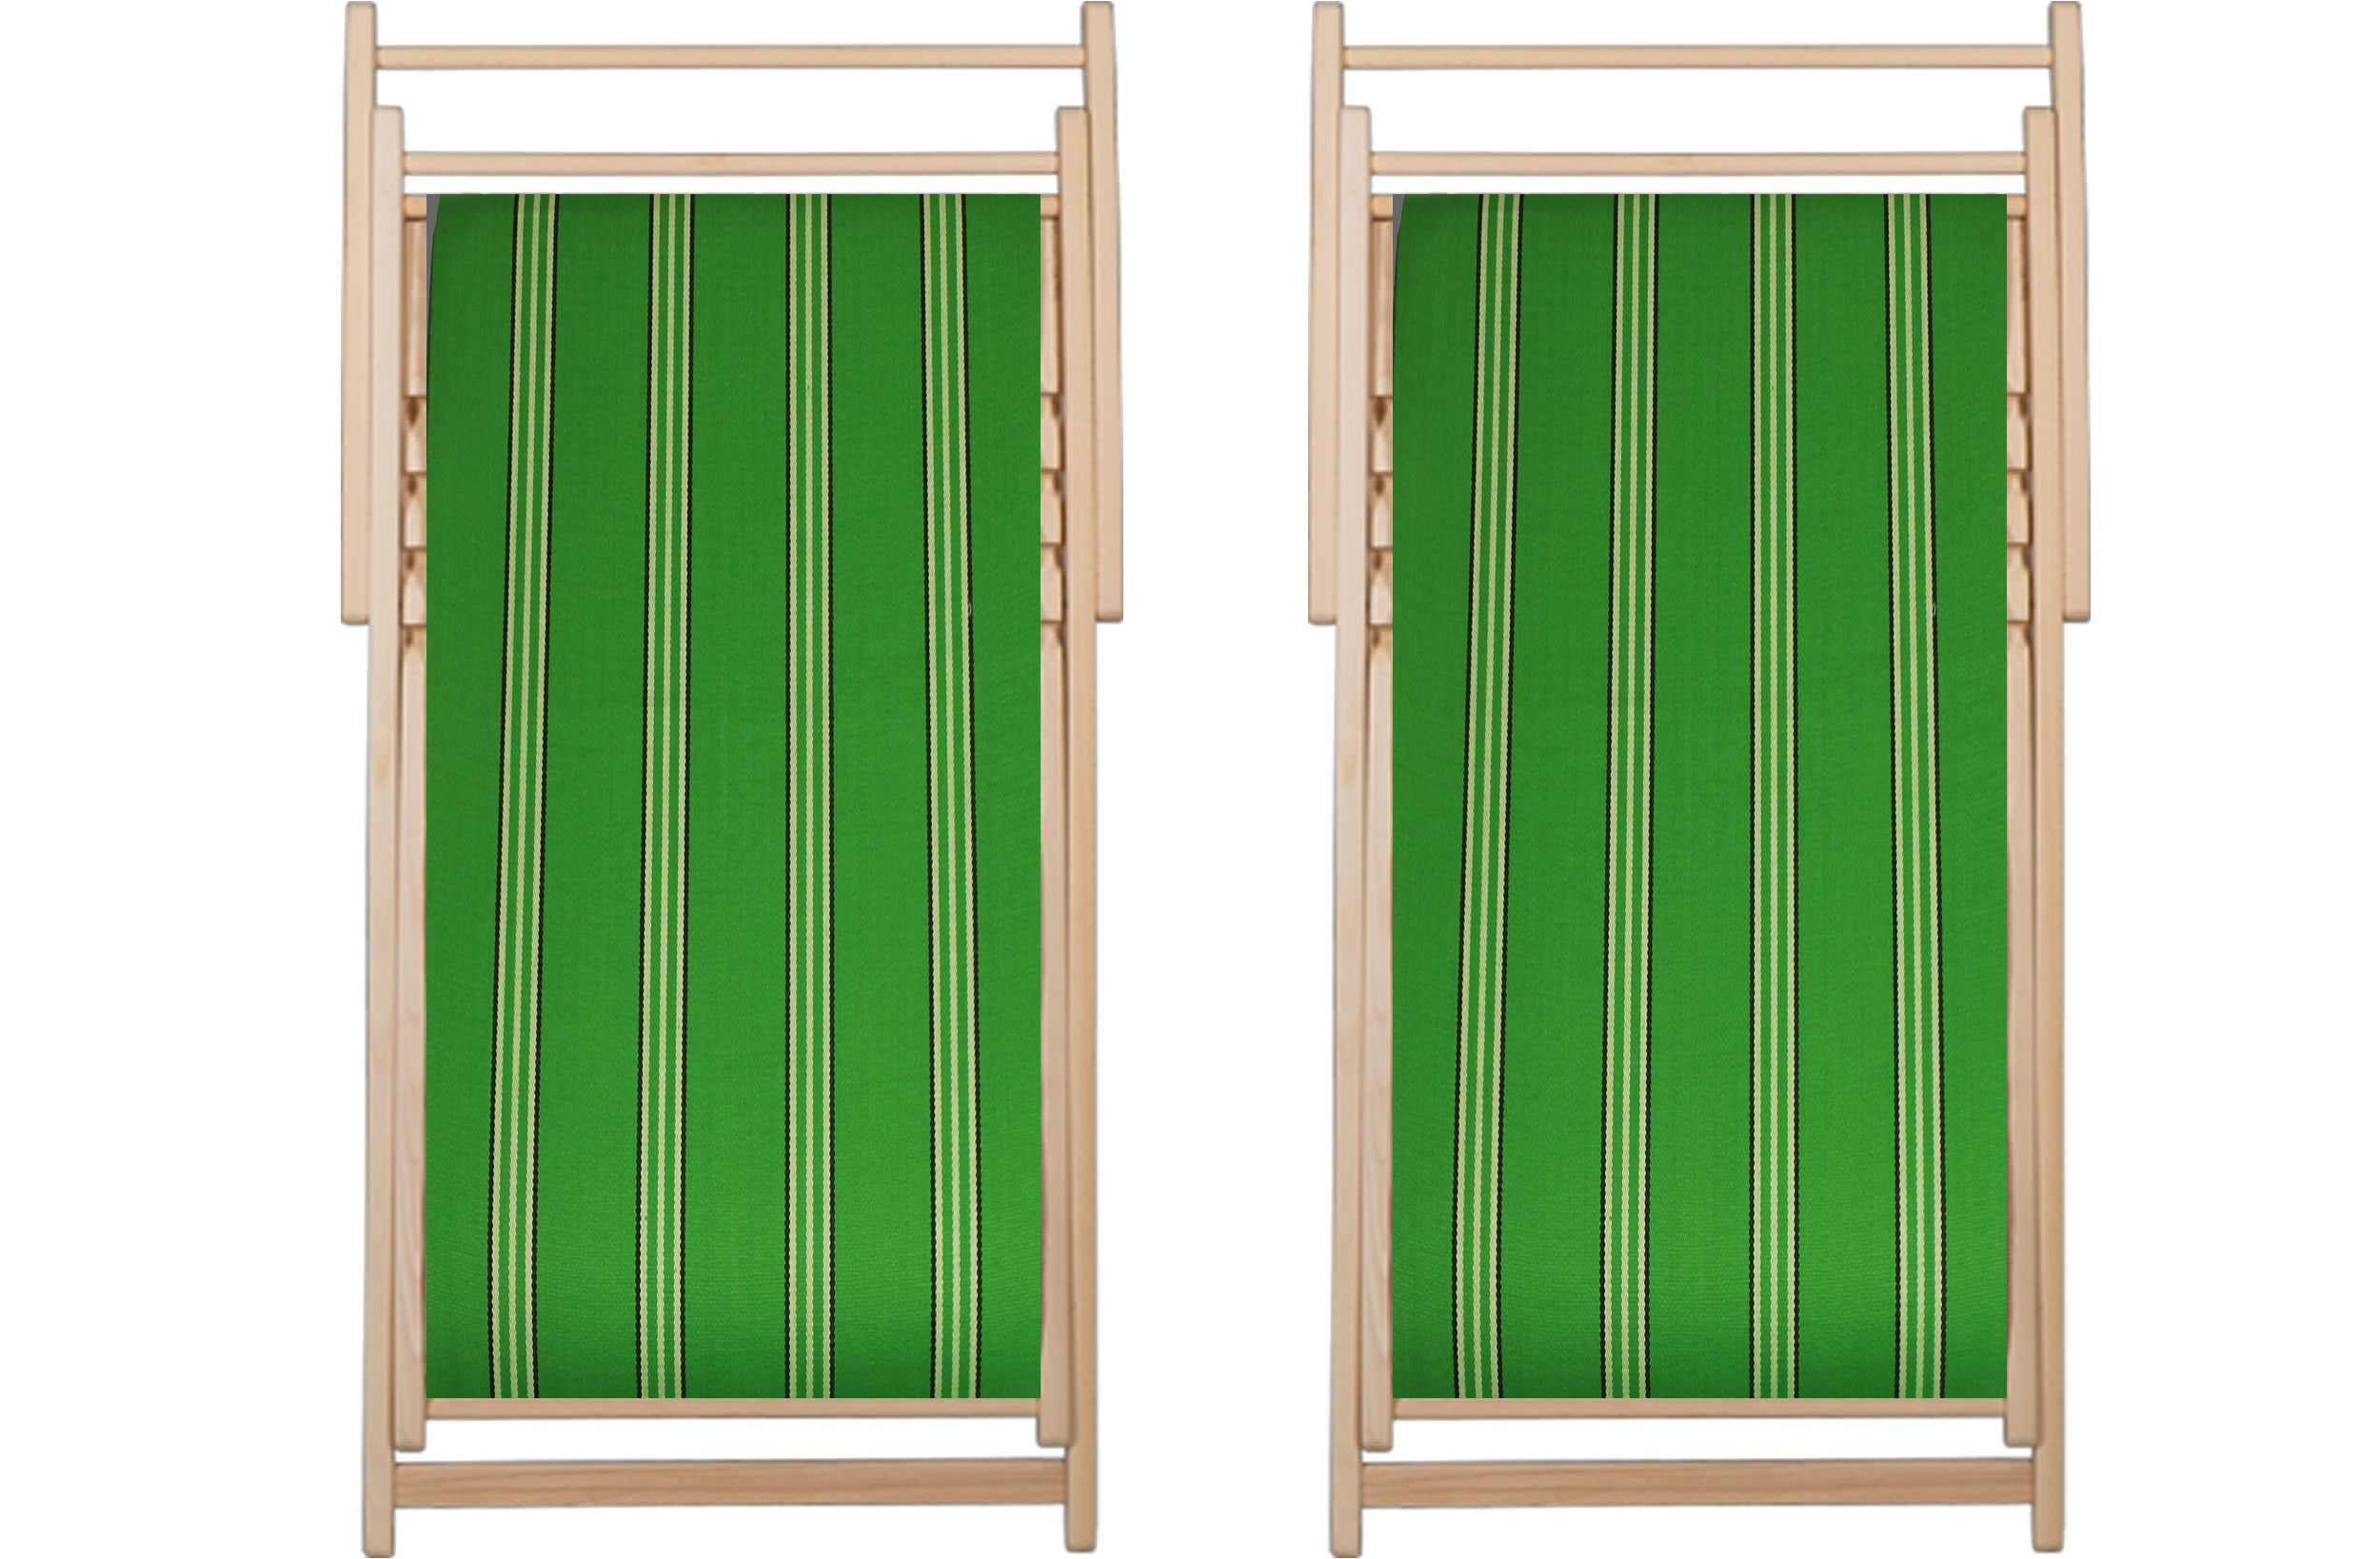 Green Deckchairs - Rounders Stripe